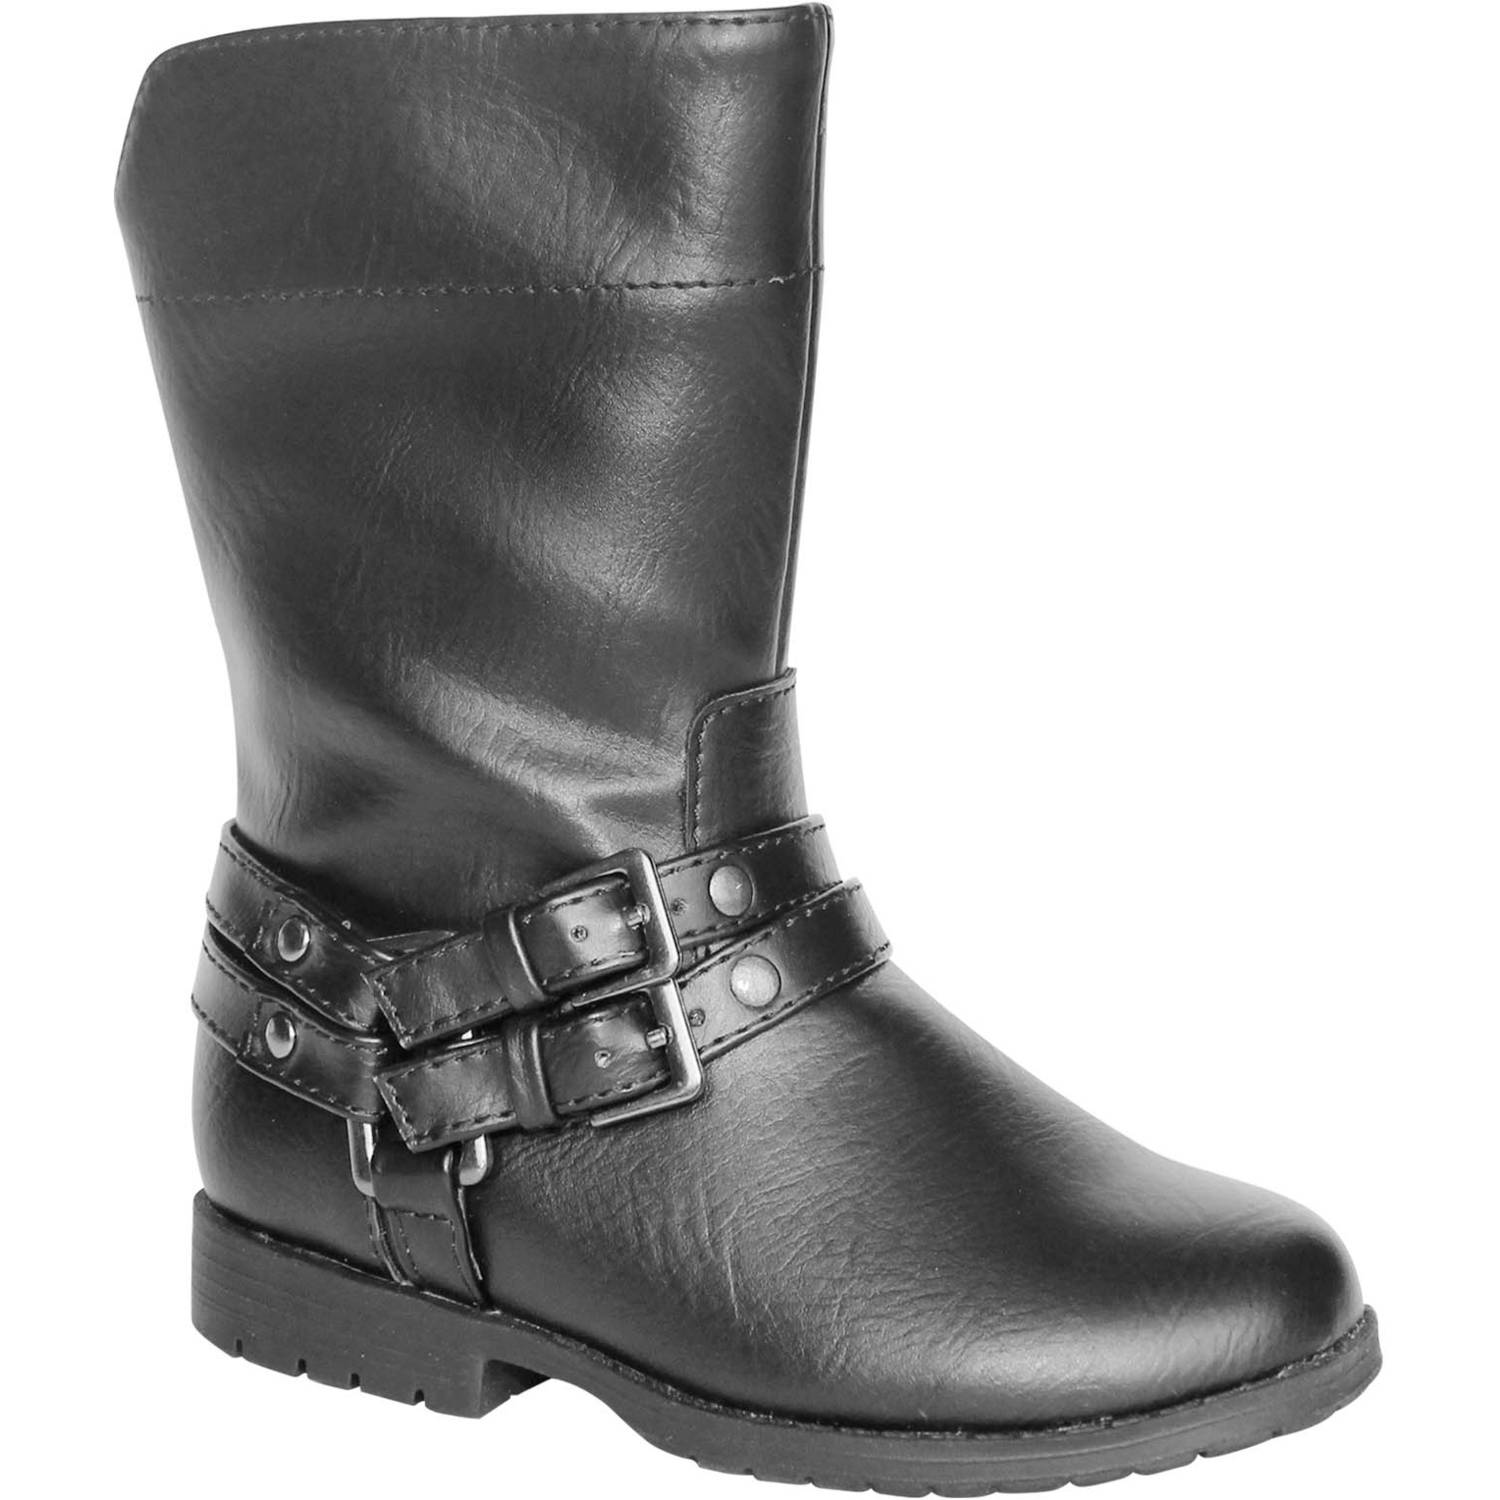 Faded Glory Toddler Girls Riding Boot ONLINE ONLY